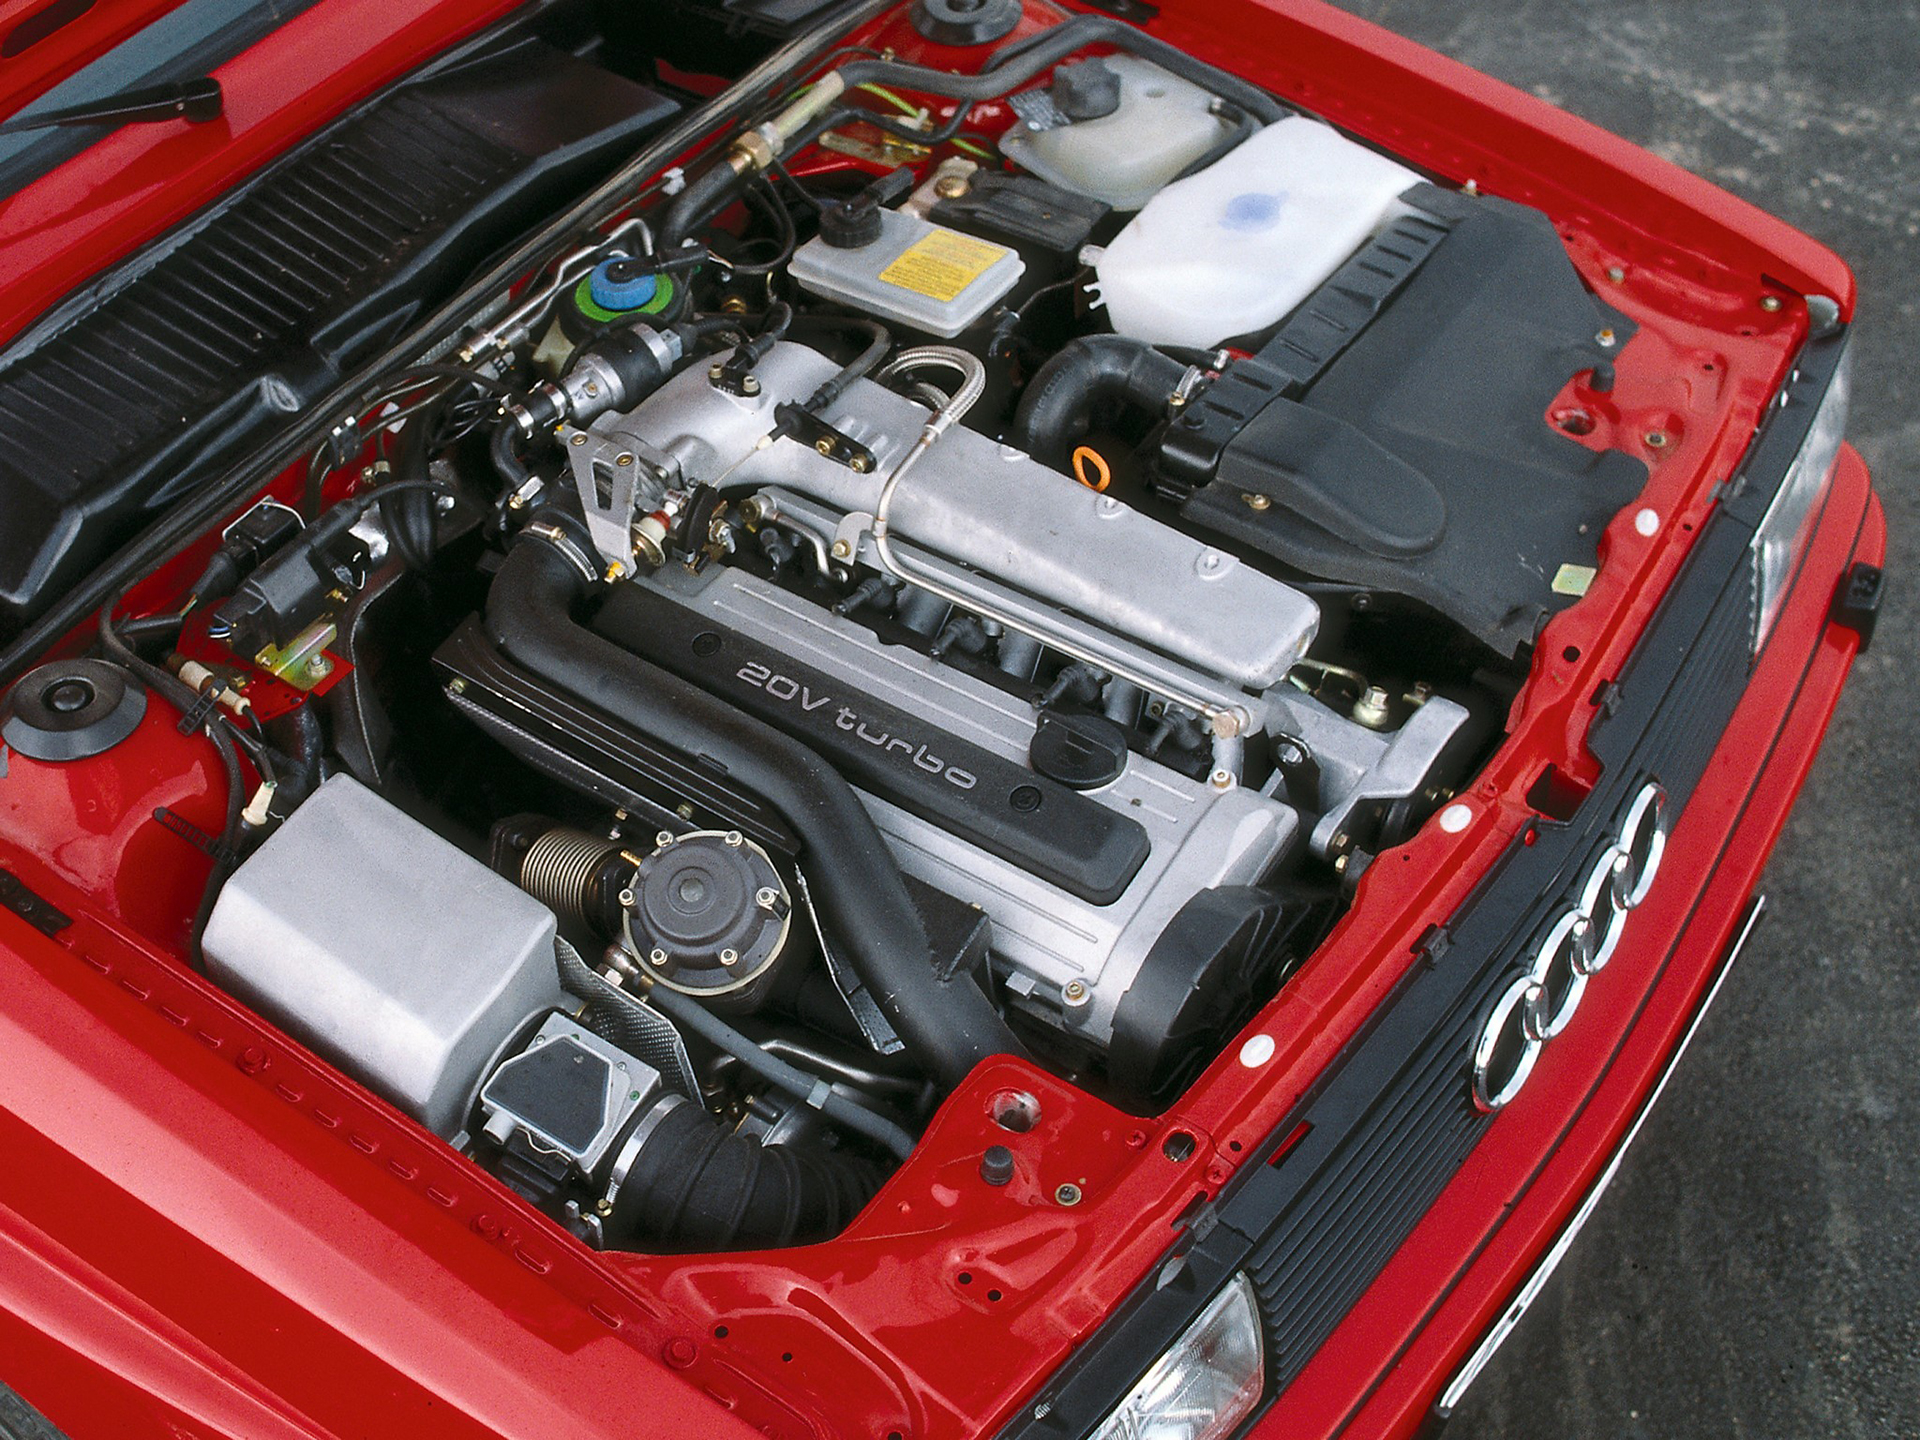 Audi quattro - under-the hood engine 20V turbo